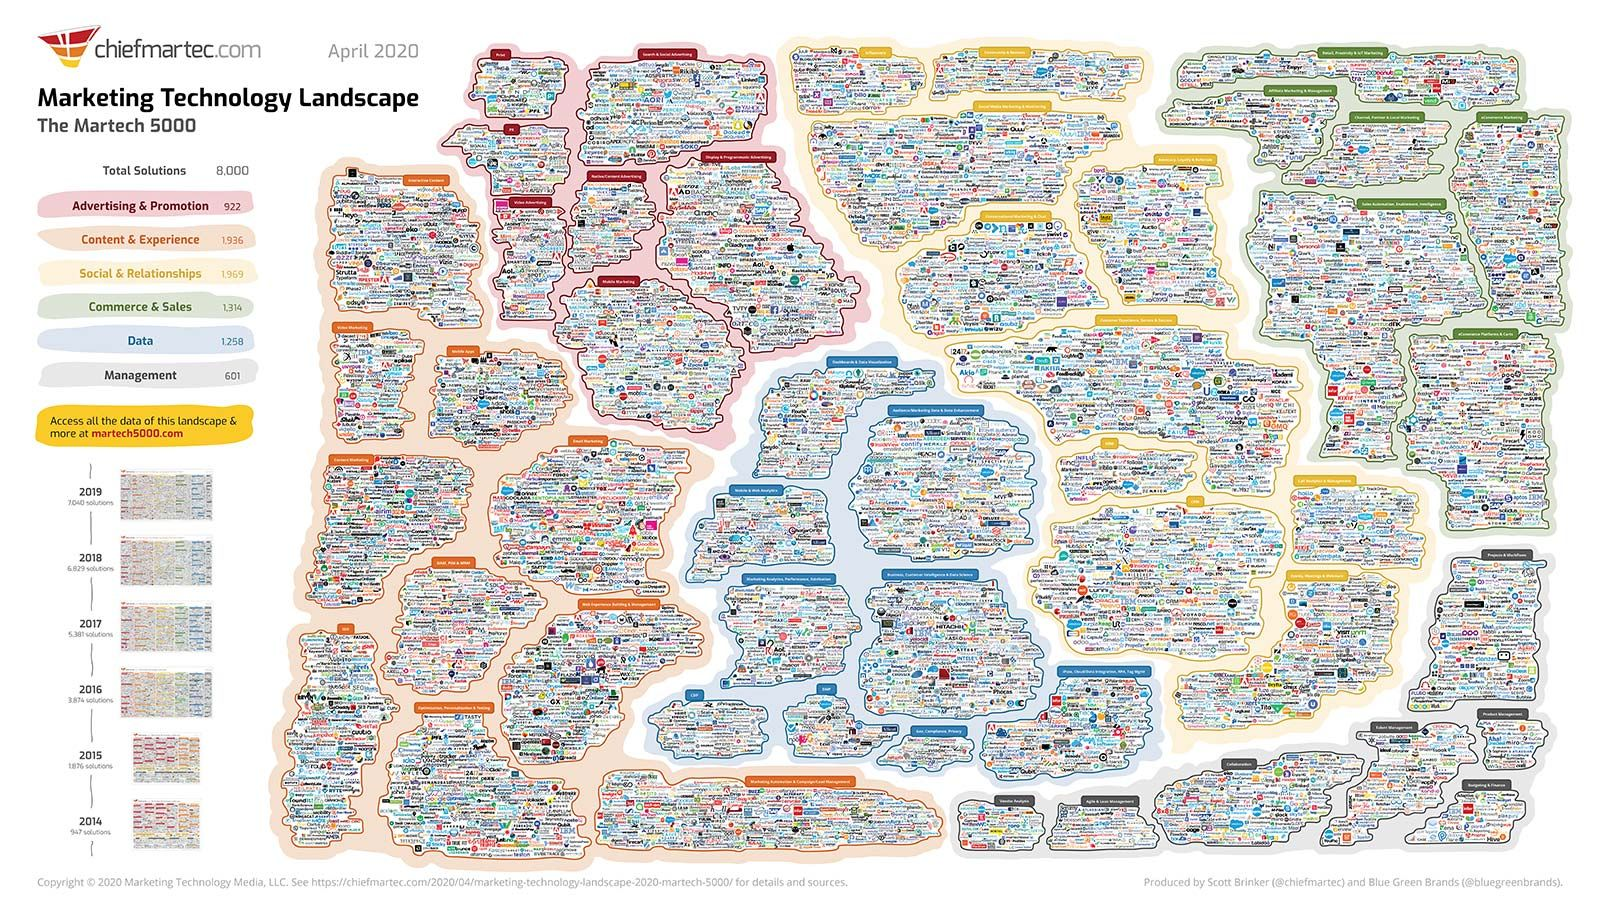 Marketing Technology Landscape Supergraphic 2020 Martech 5000 Really 8 000 But Who S Count Marketing Technology Landscape Features Interactive Marketing